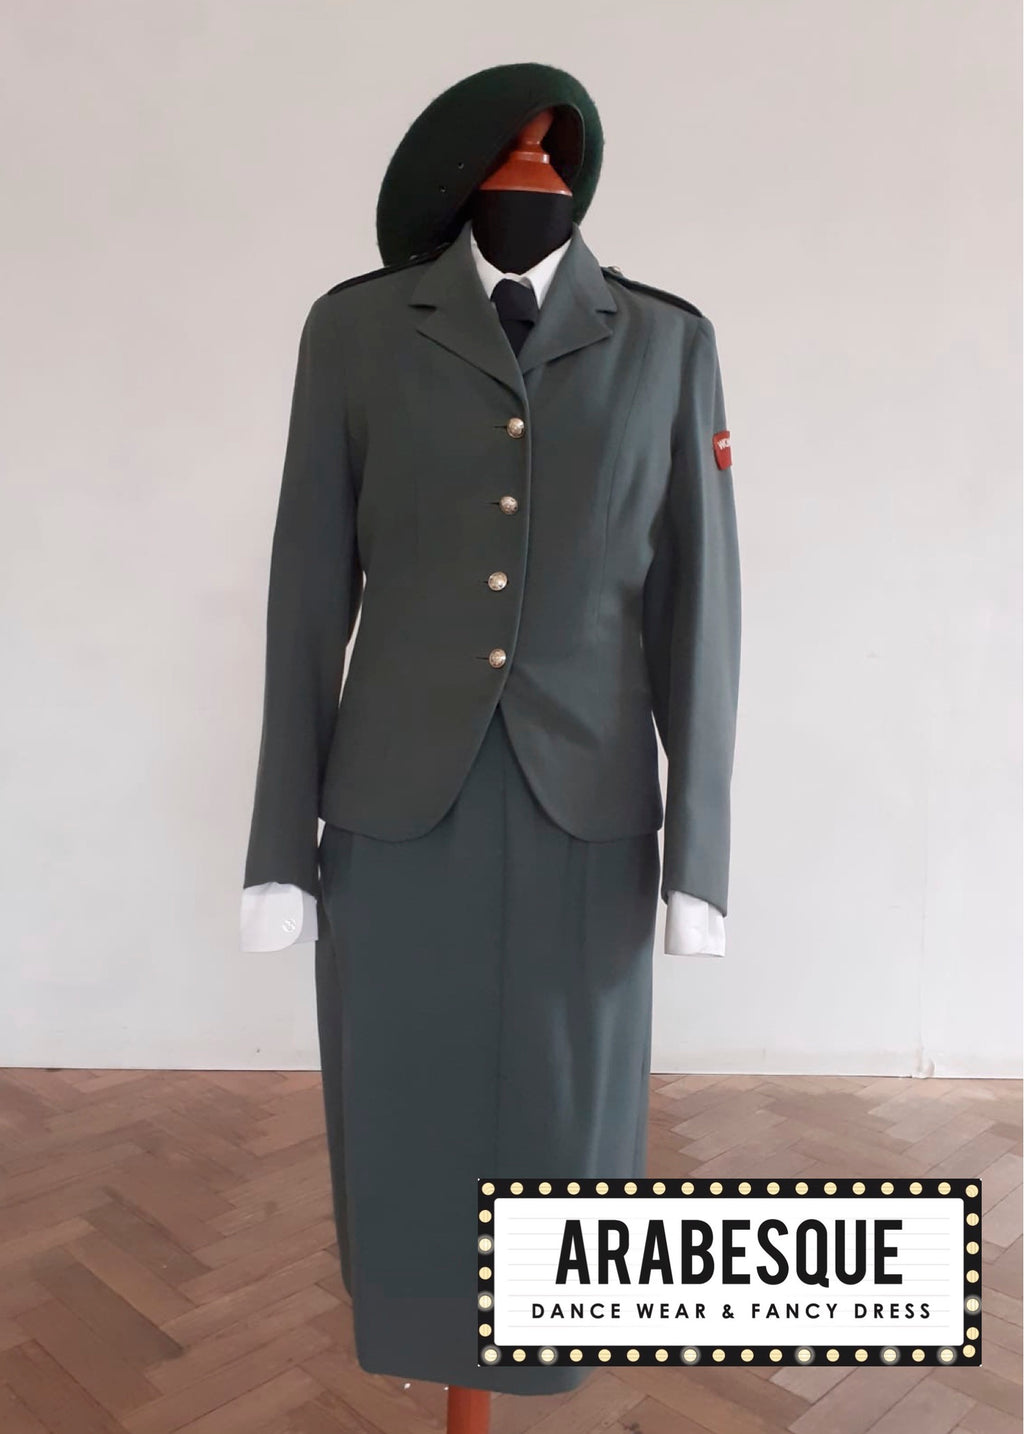 Ladies Royal Army Corp Uniform